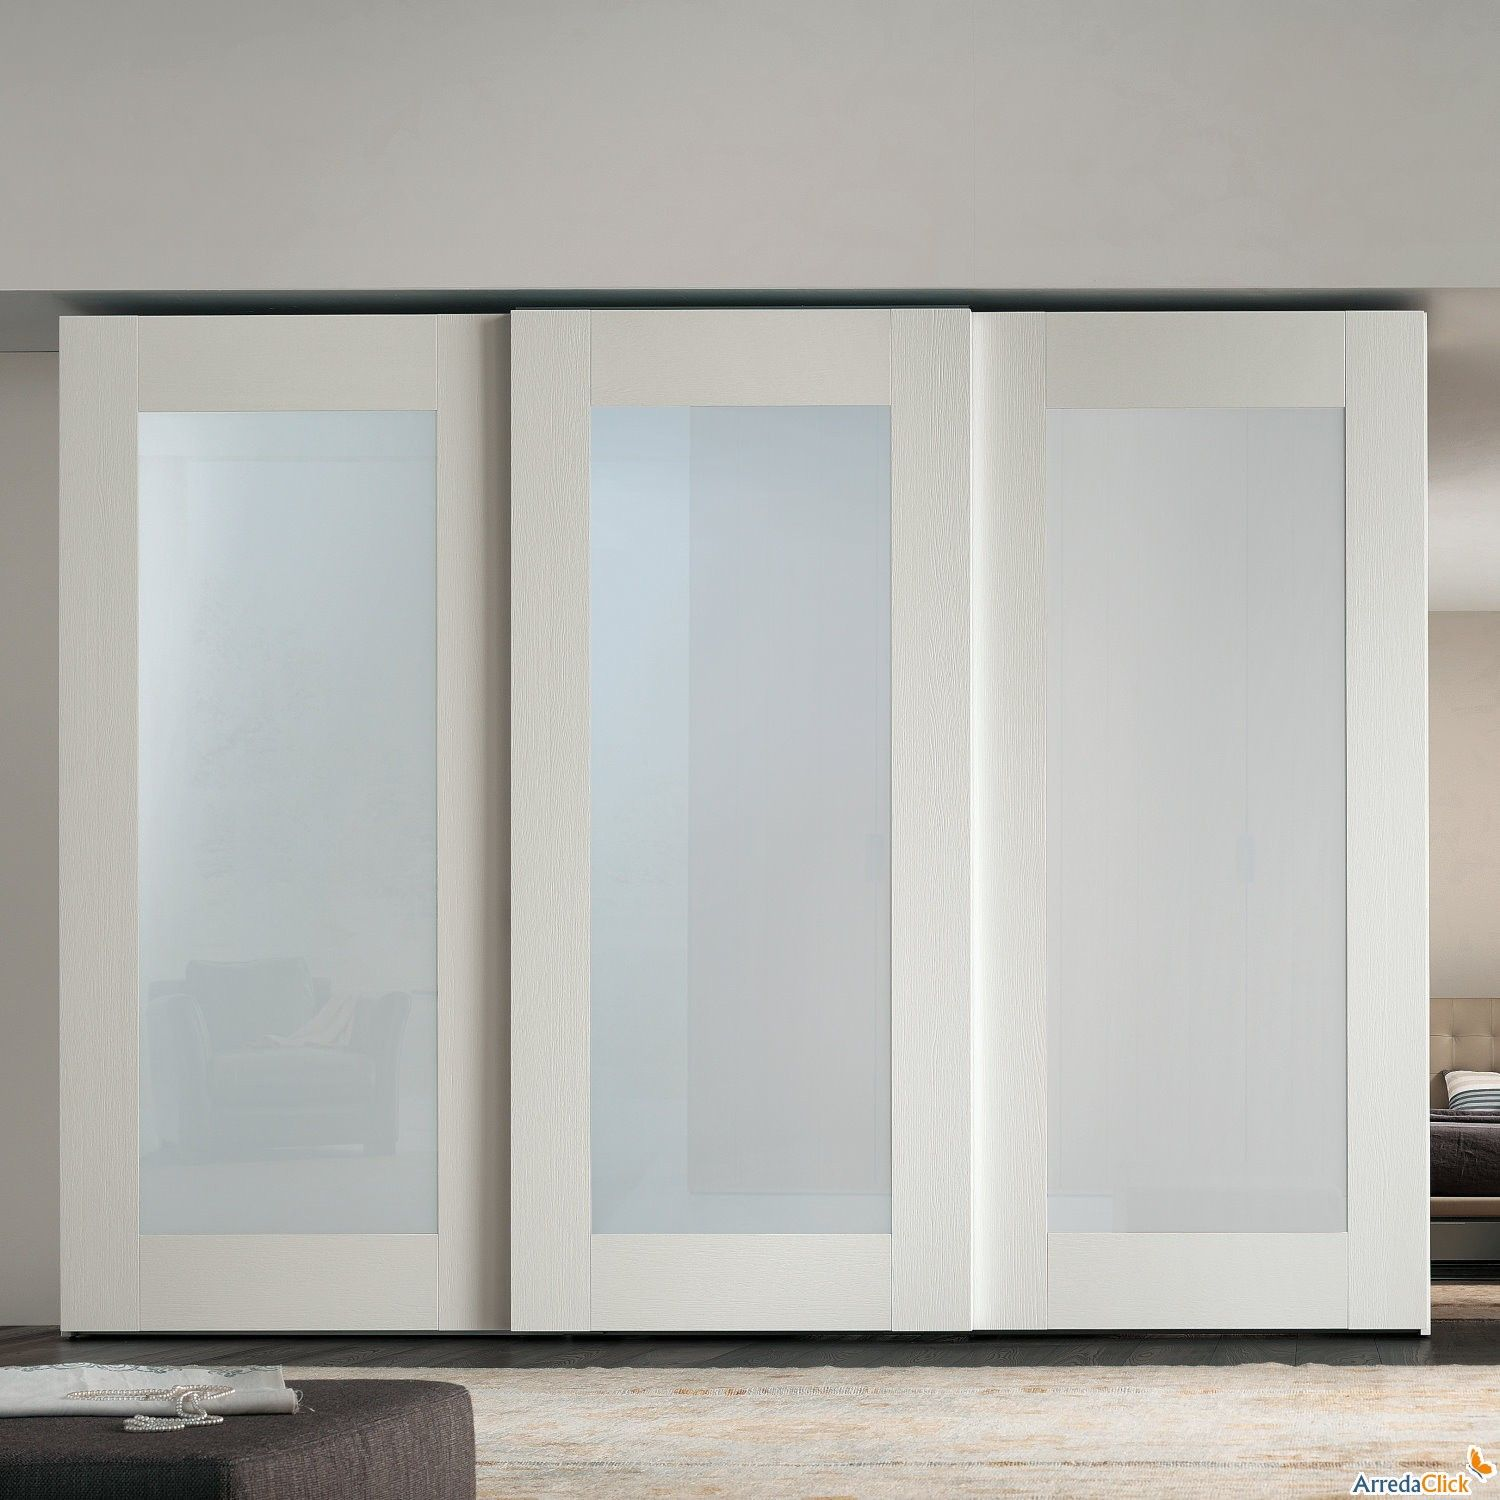 3 panel mirror sliding closet doors - White Sliding Closet Doors Google Search